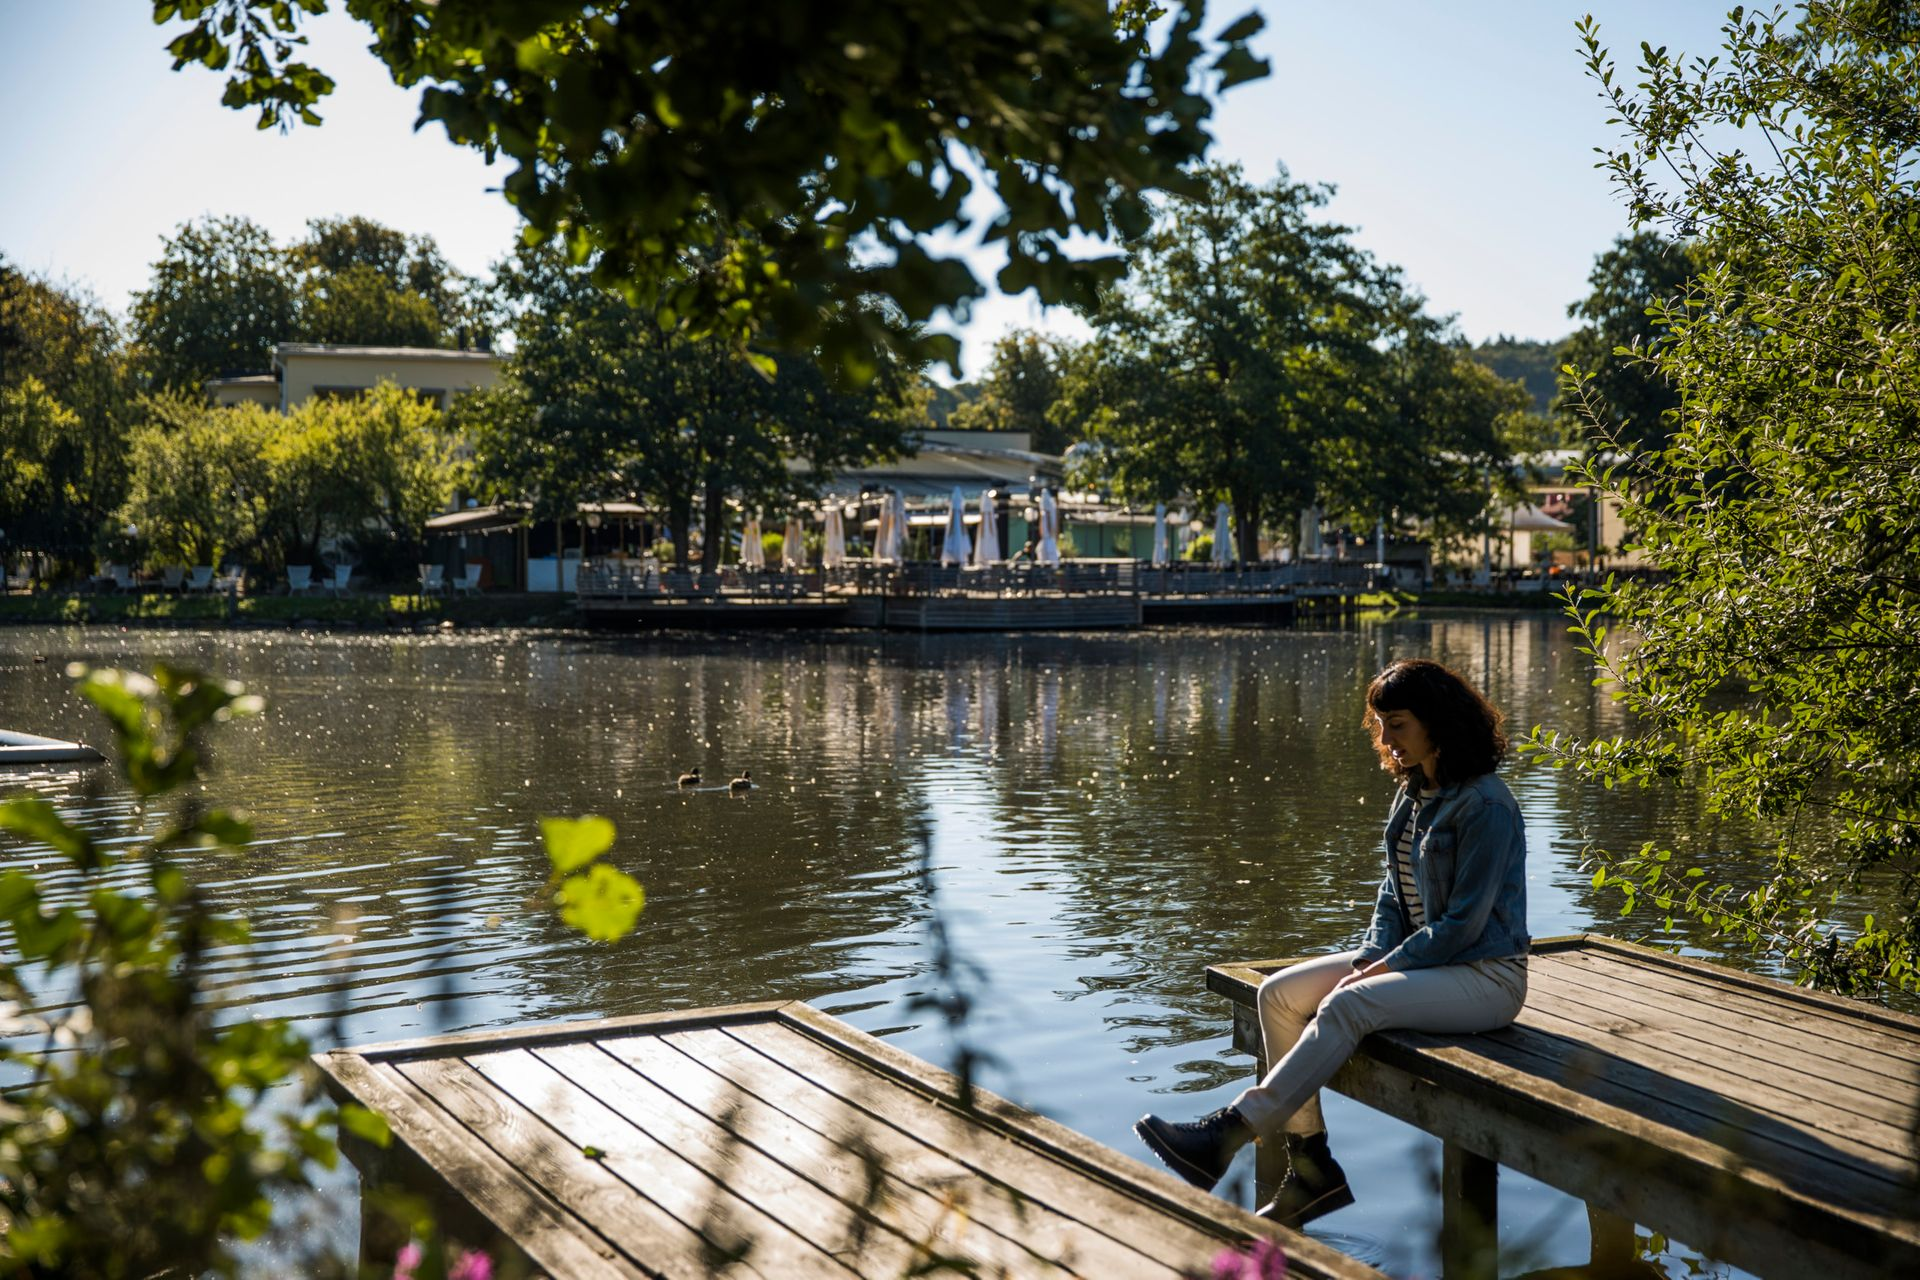 A girl sitting on a deck above water, in one of the biggest parks of Gothenburg